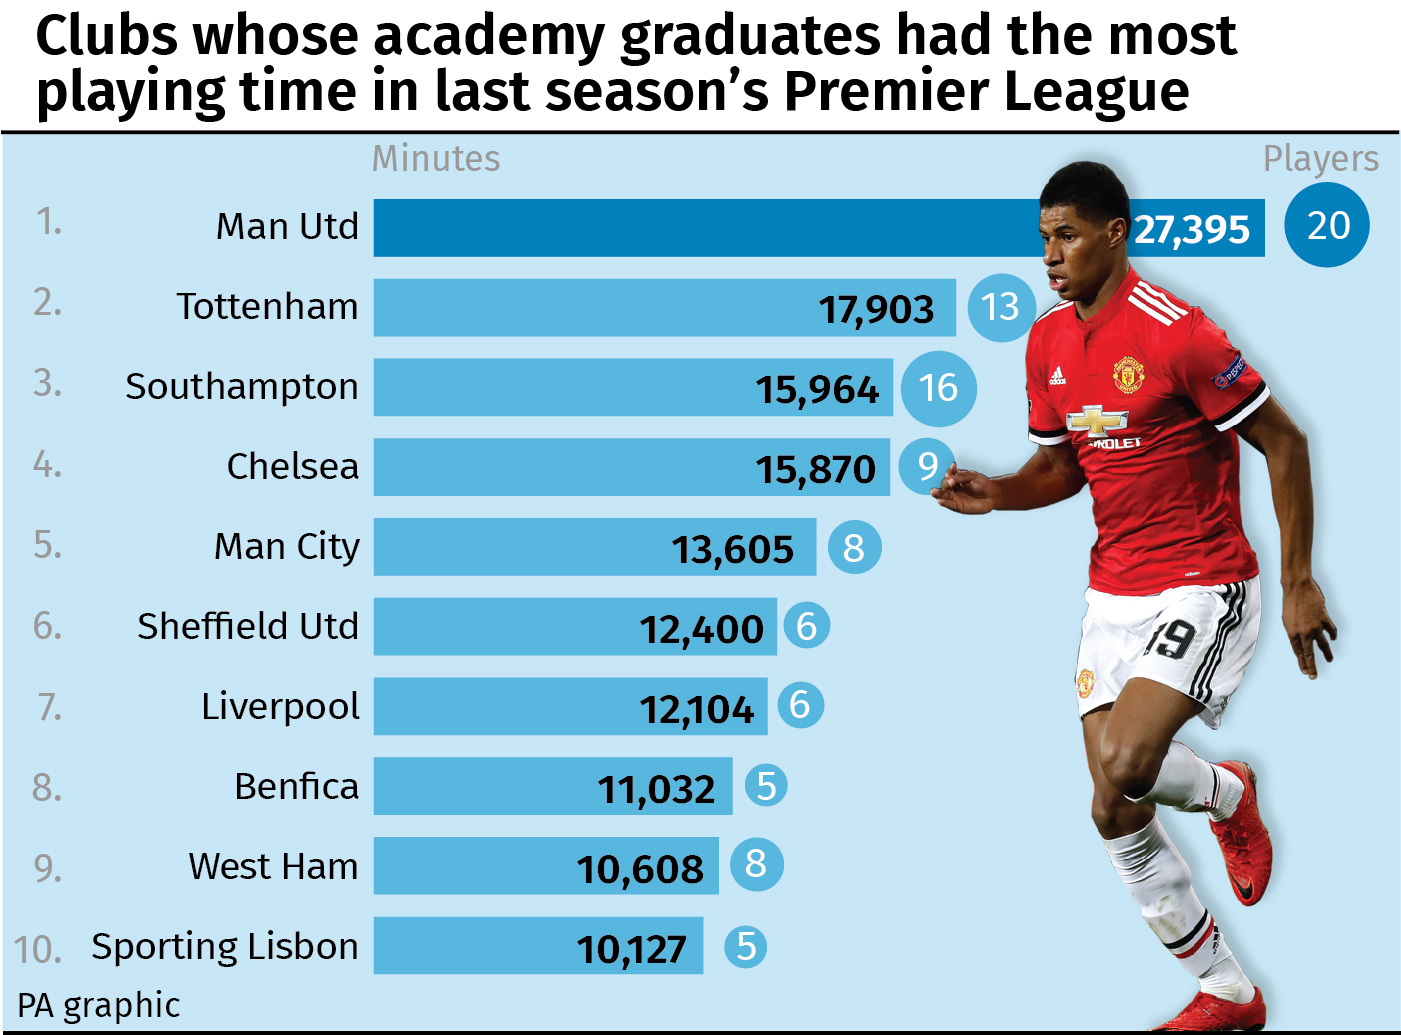 Clubs whose academy graduates had most playing time in last season's Premier League